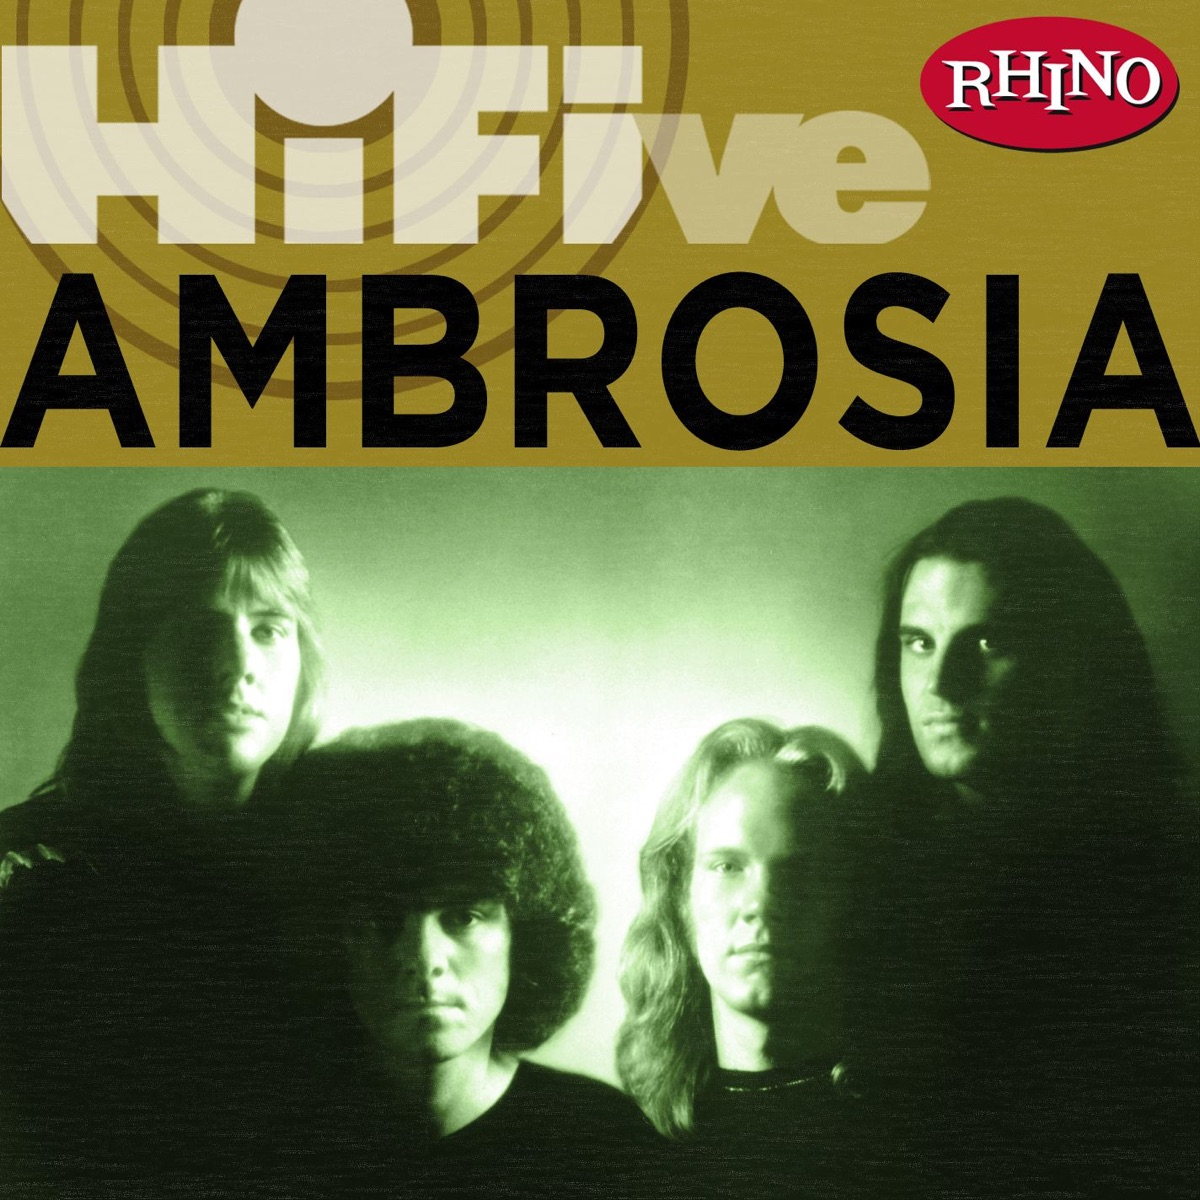 Rhino Hi Five Ambrosia - EP Ambrosia CD cover